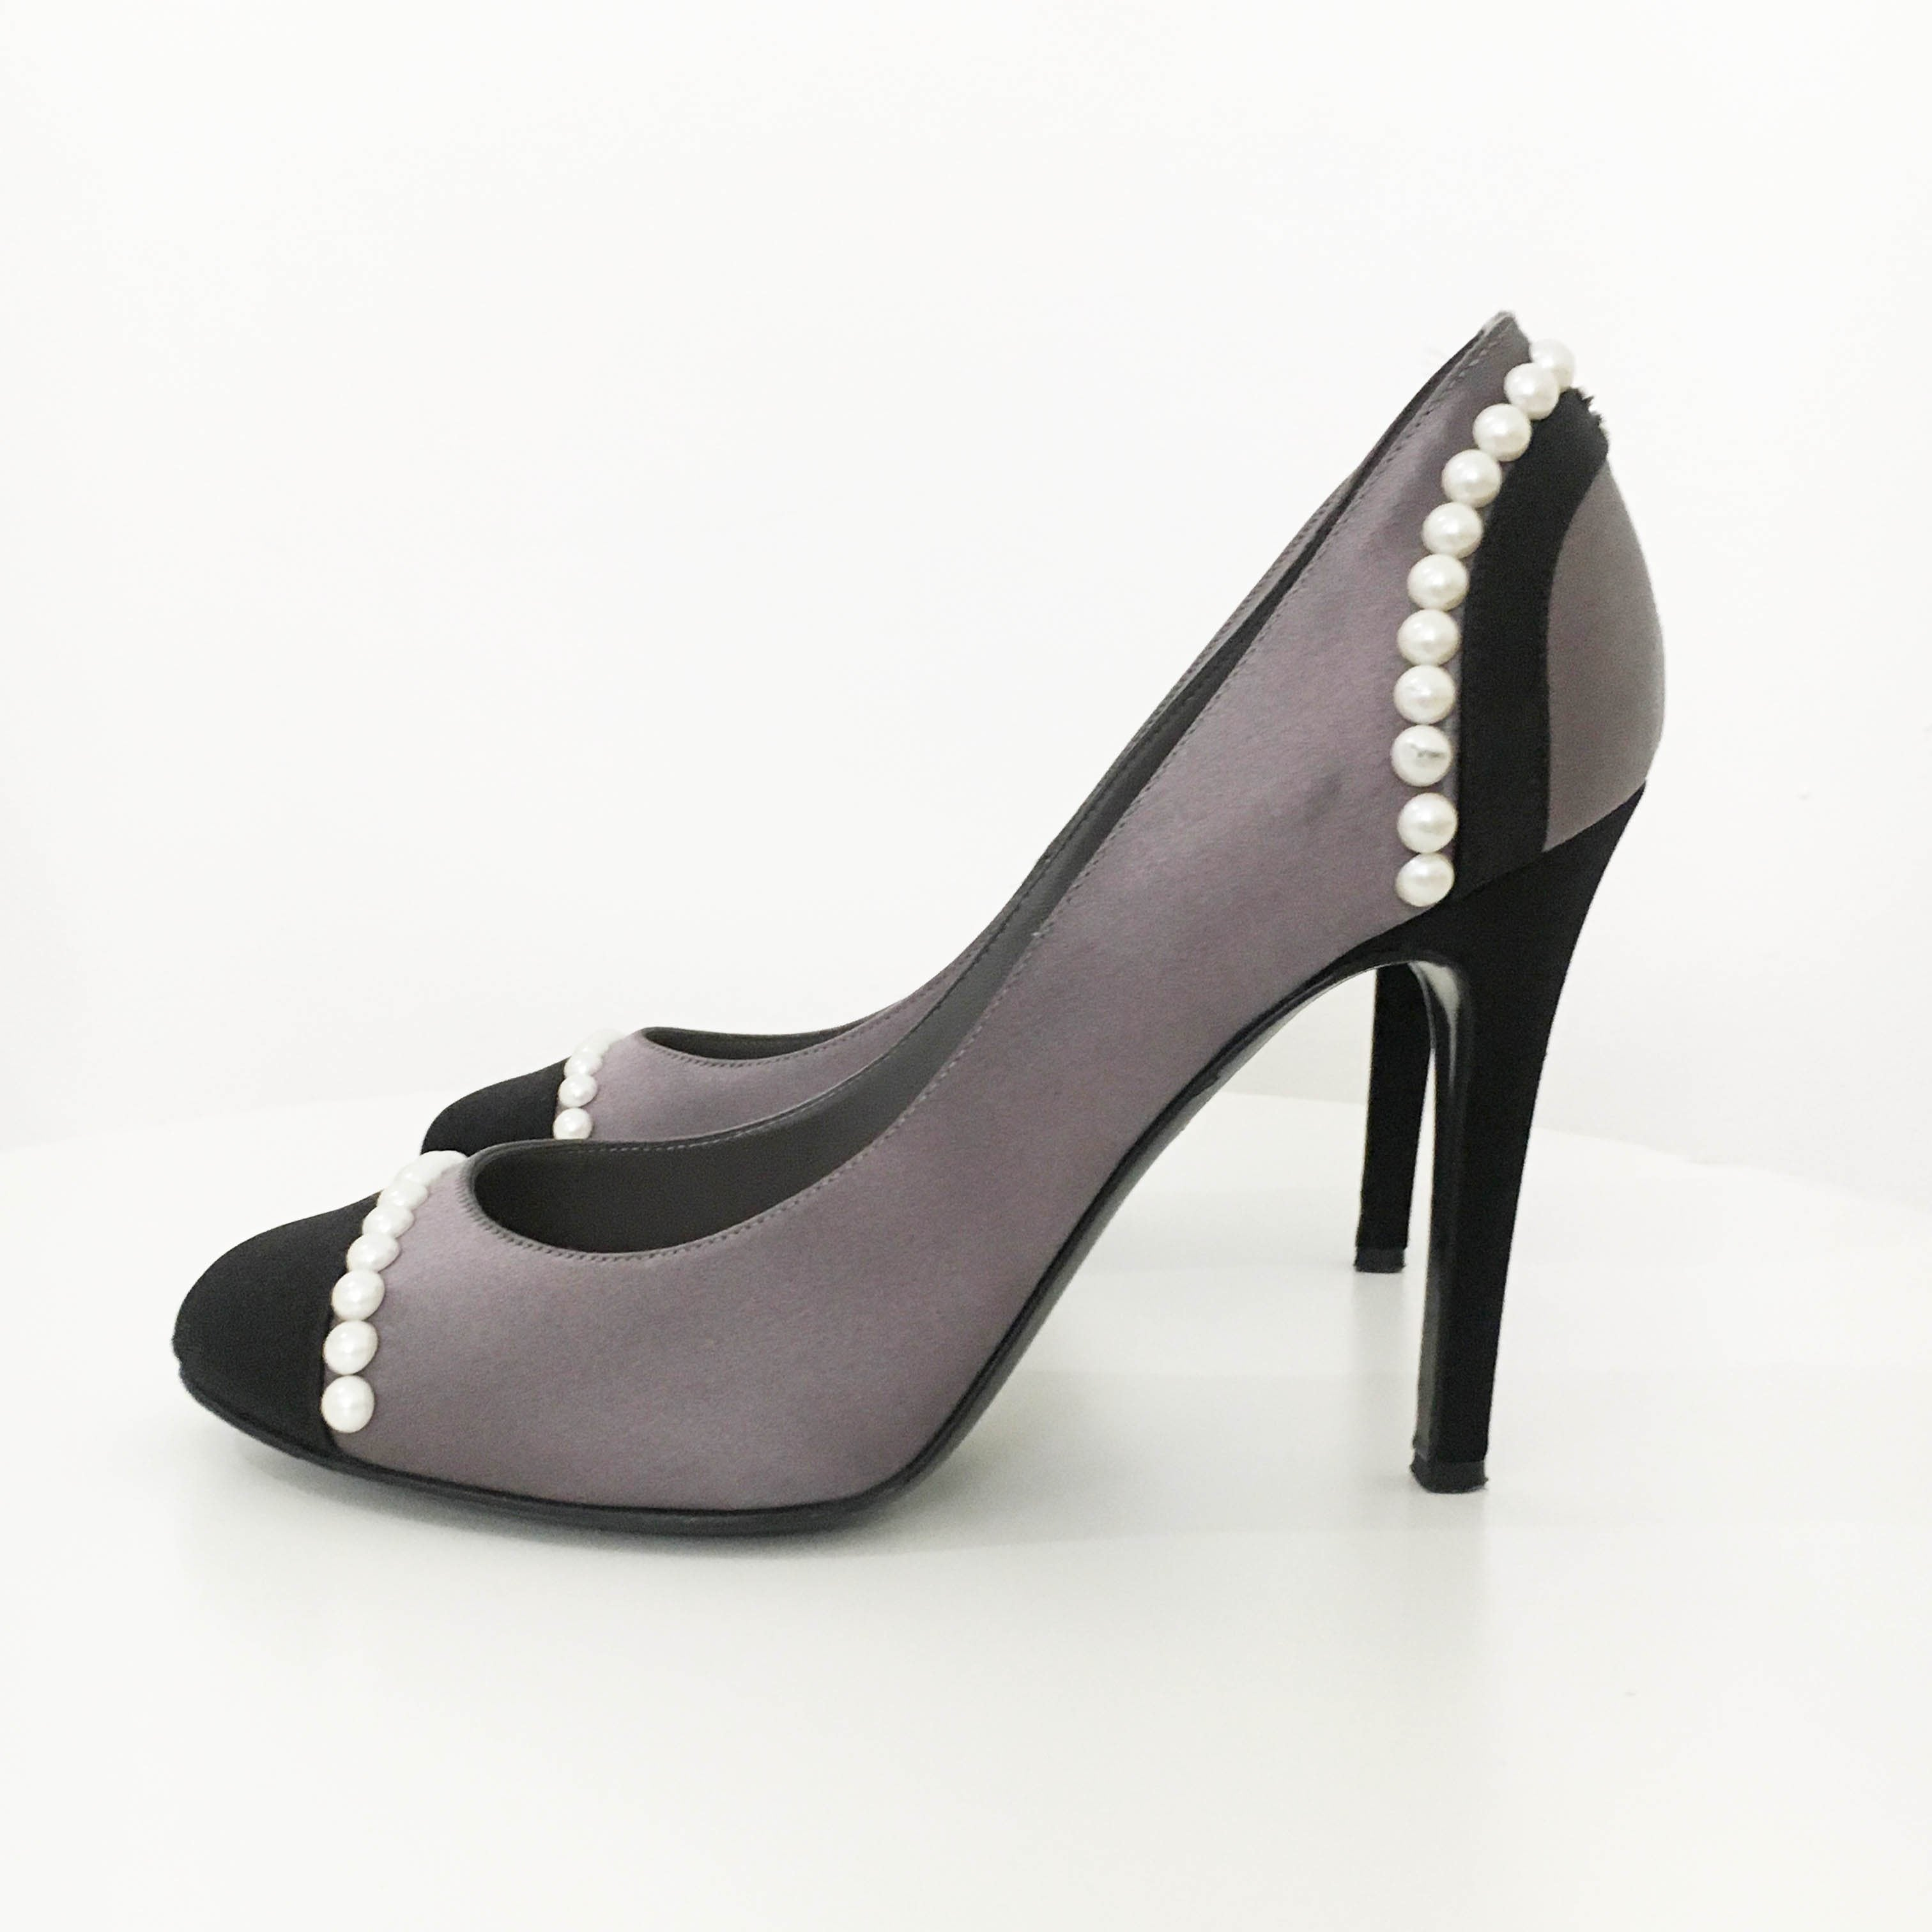 Chanel Grey Satin Pumps With Pearls